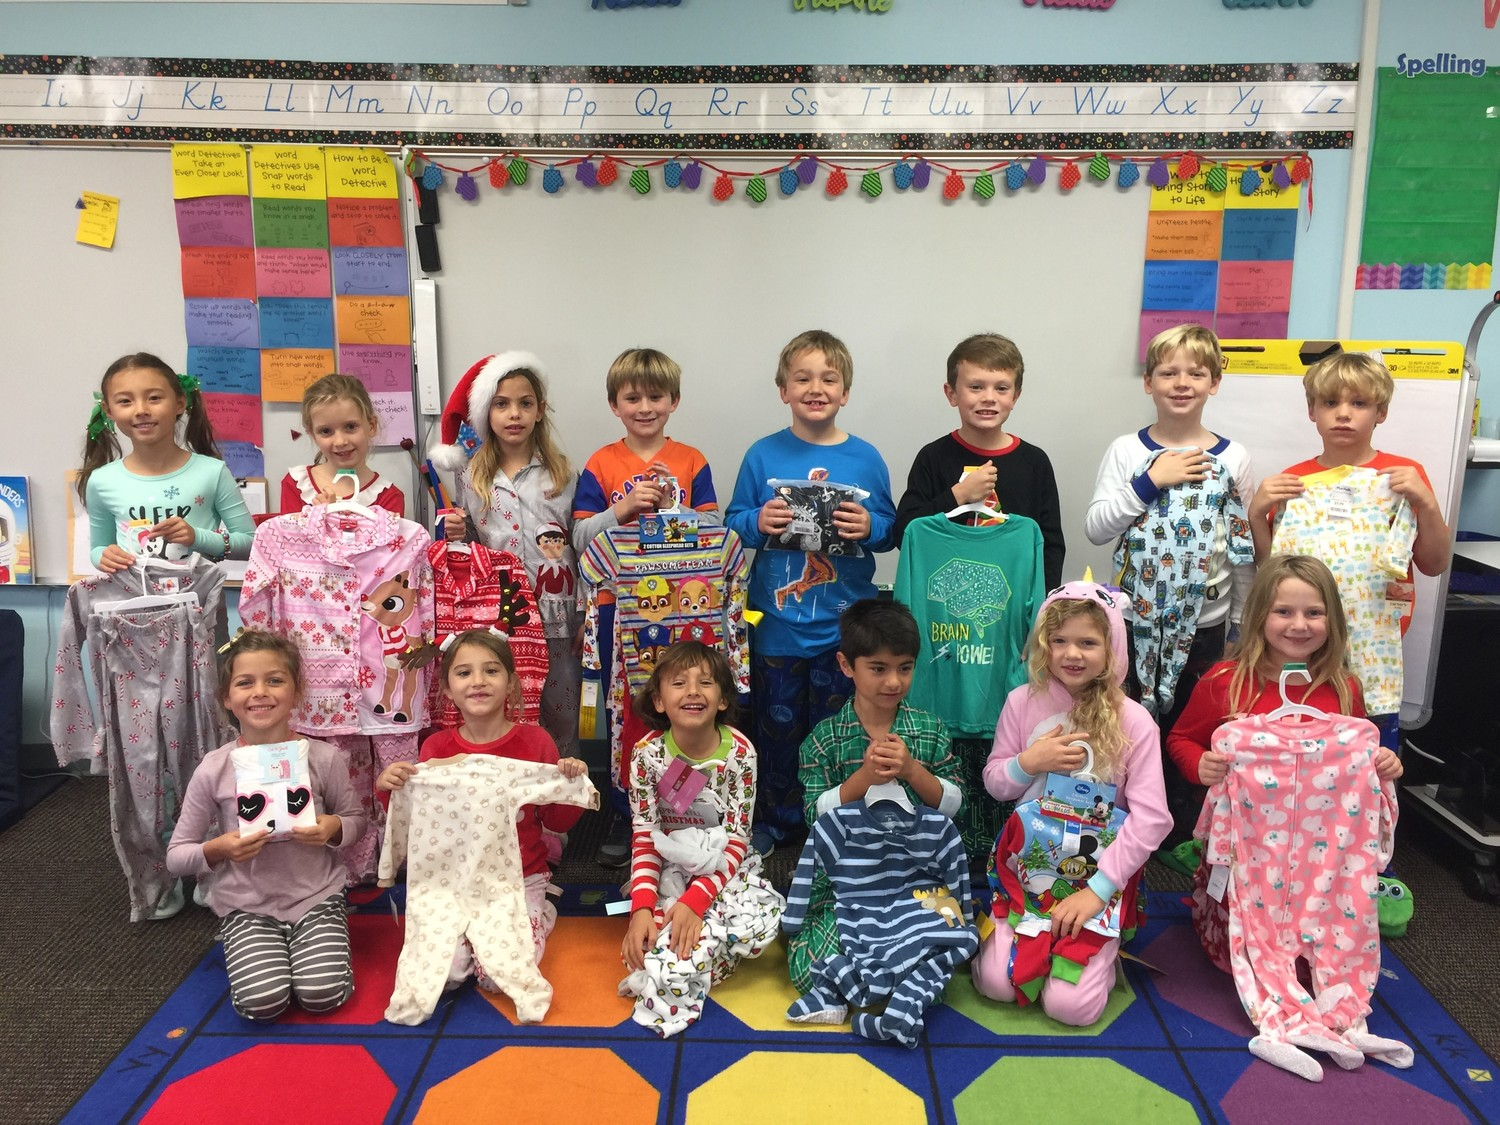 Bolles Pvb Campus First Graders Celebrate Snow Day